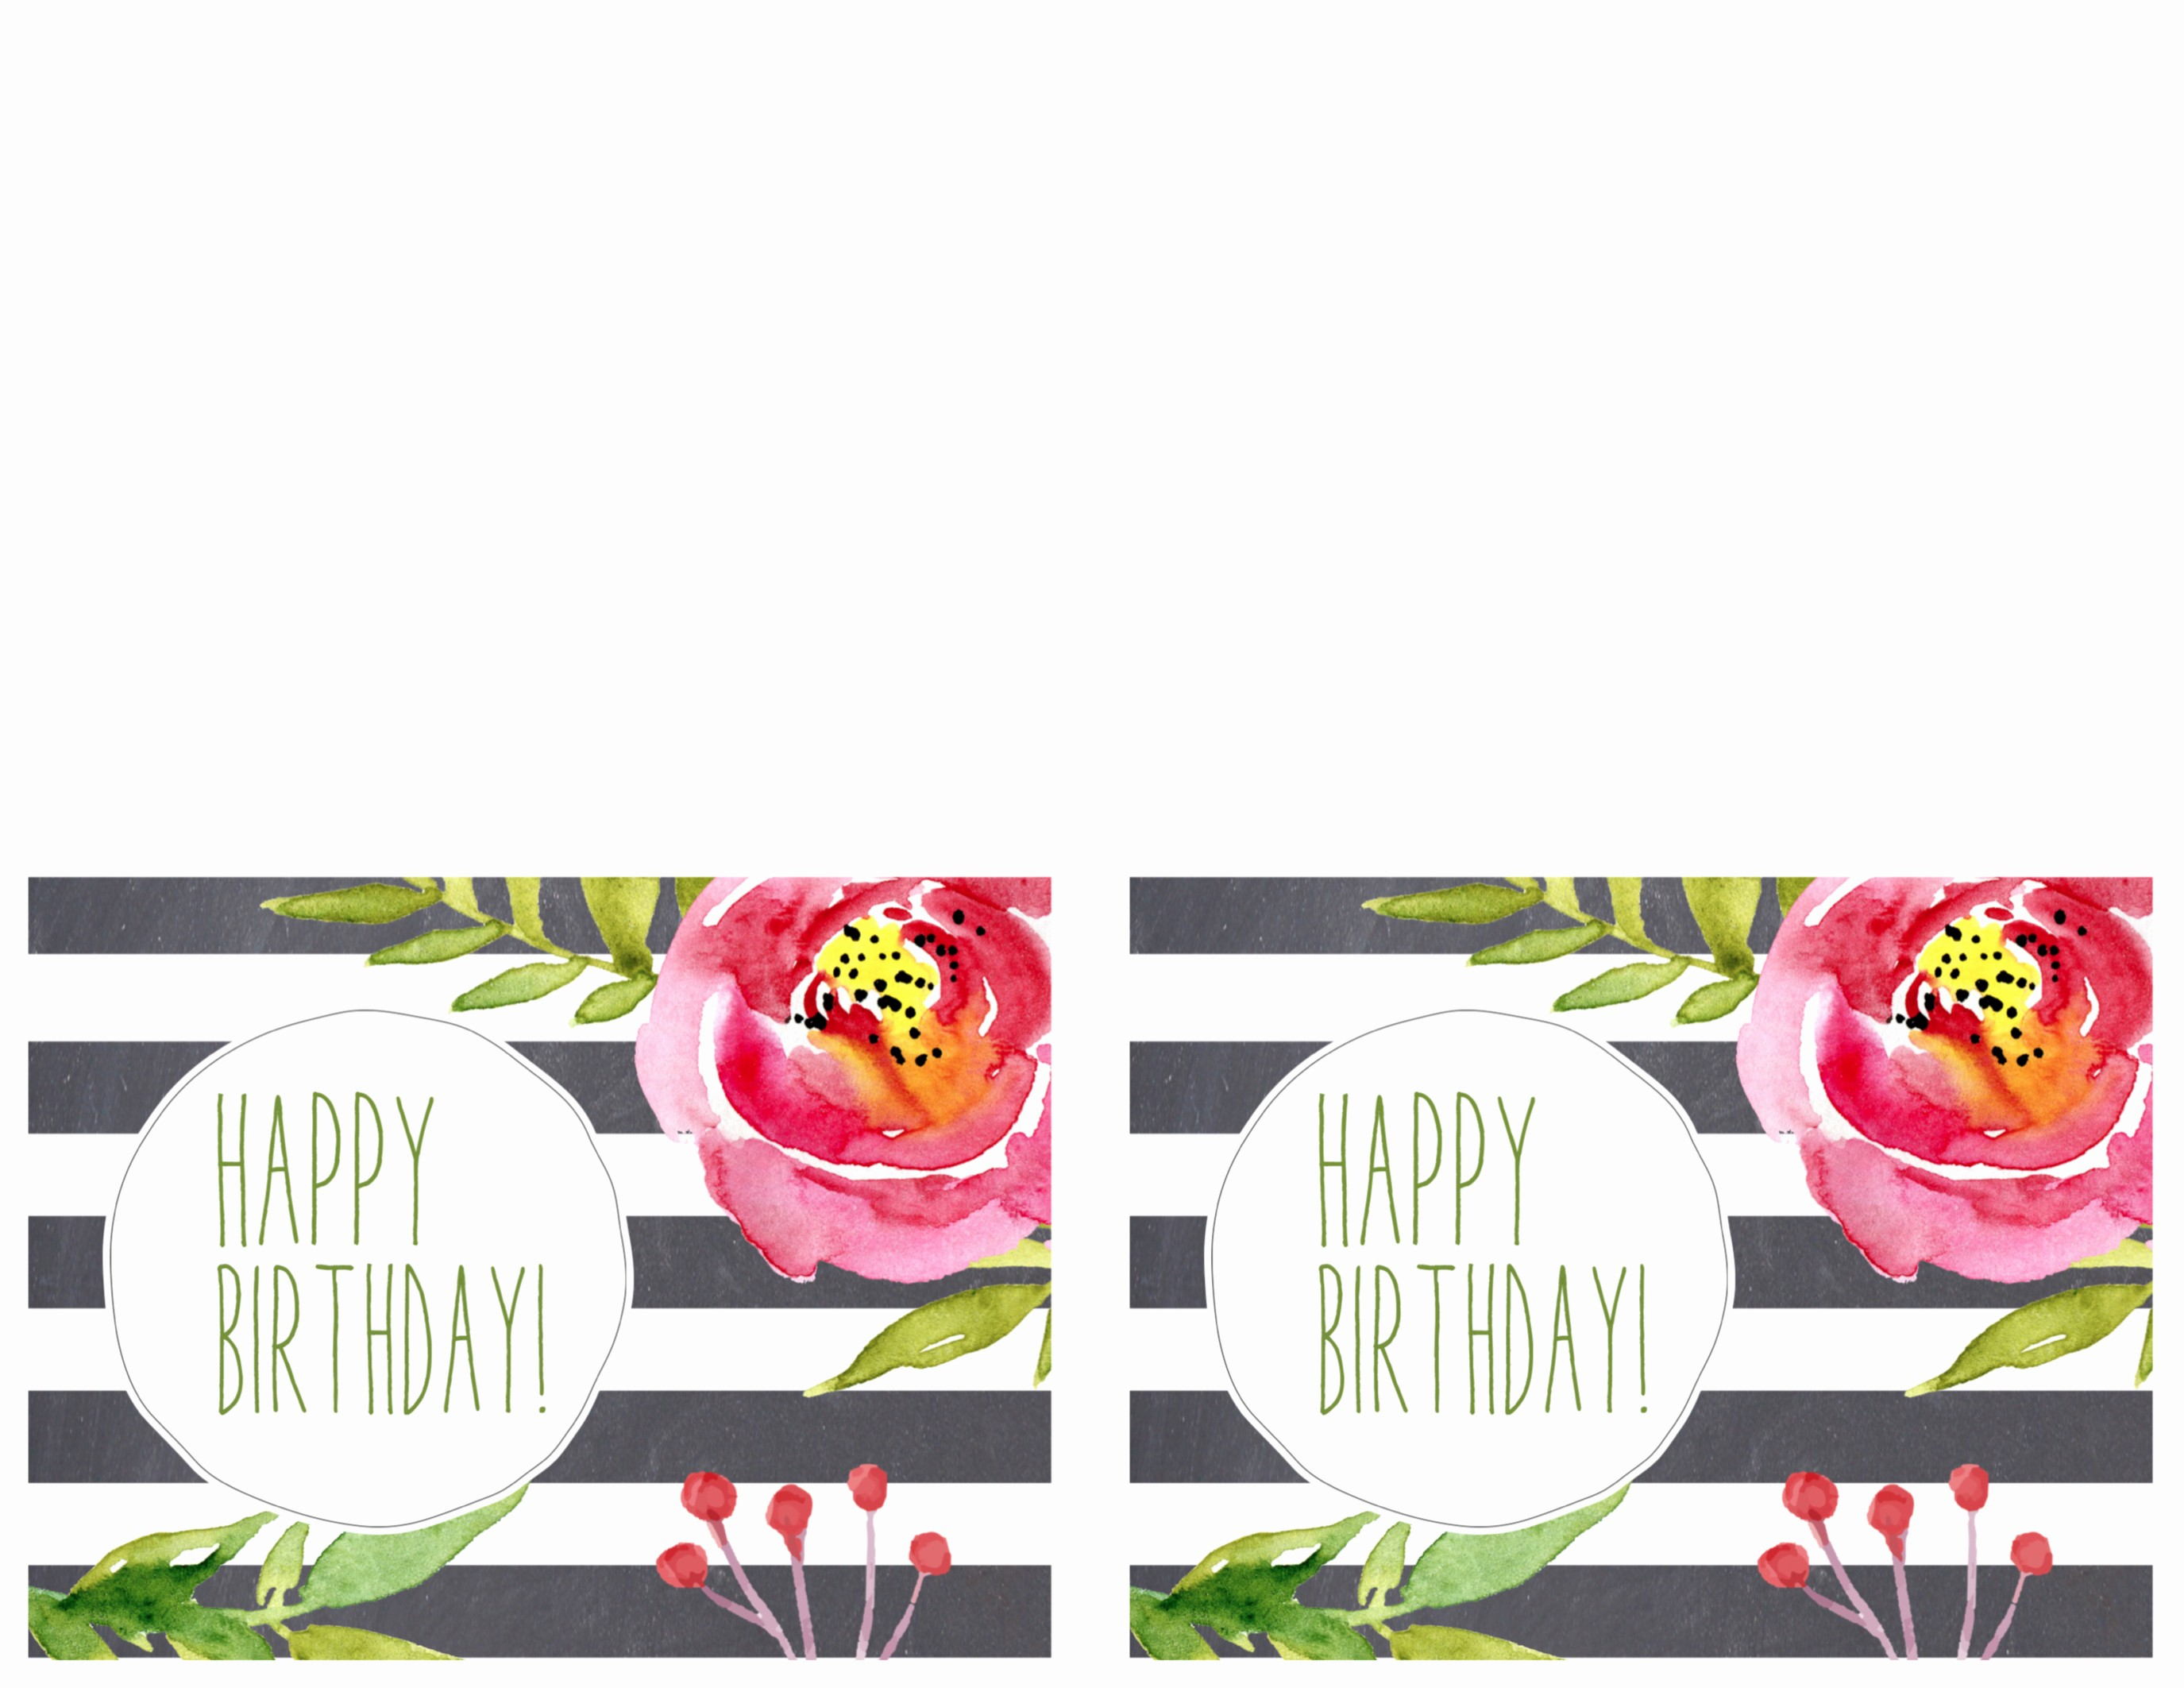 Happy Birthday Certificate Free Printable Inspirational Free Printable Greeting Cards Thank You Thinking Of You